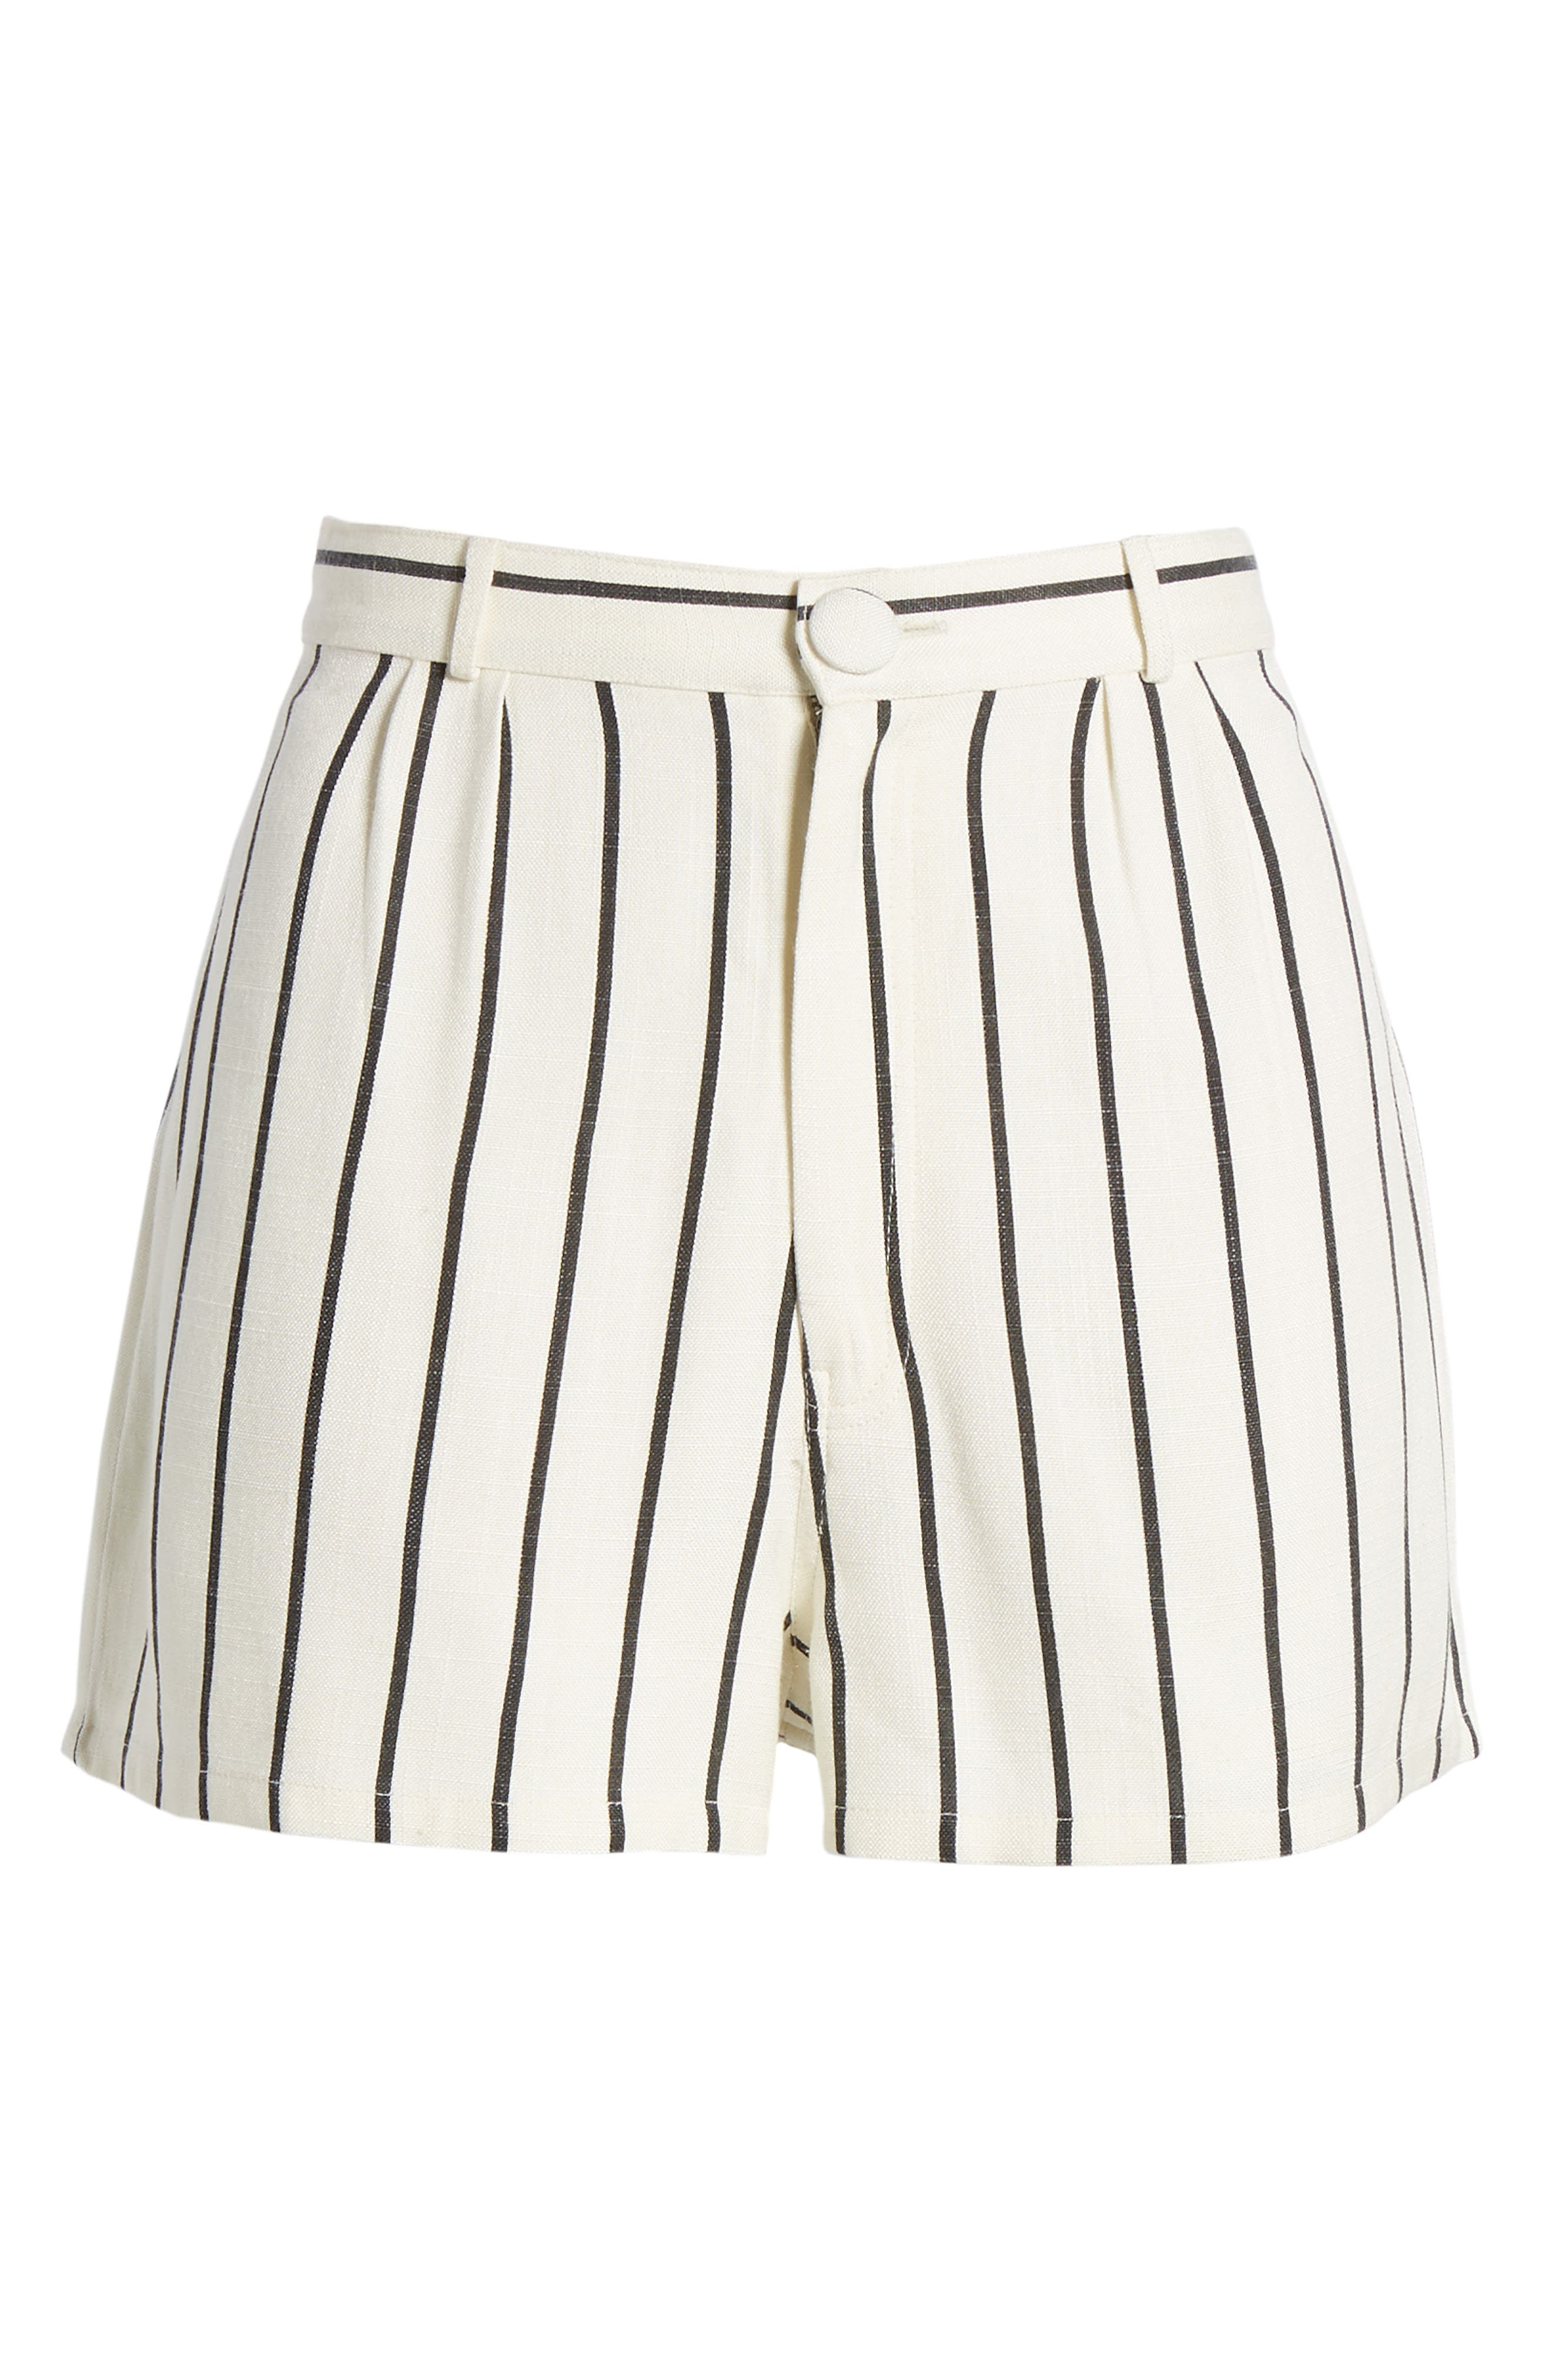 Jordy Stripe High Waist Shorts,                             Alternate thumbnail 7, color,                             251